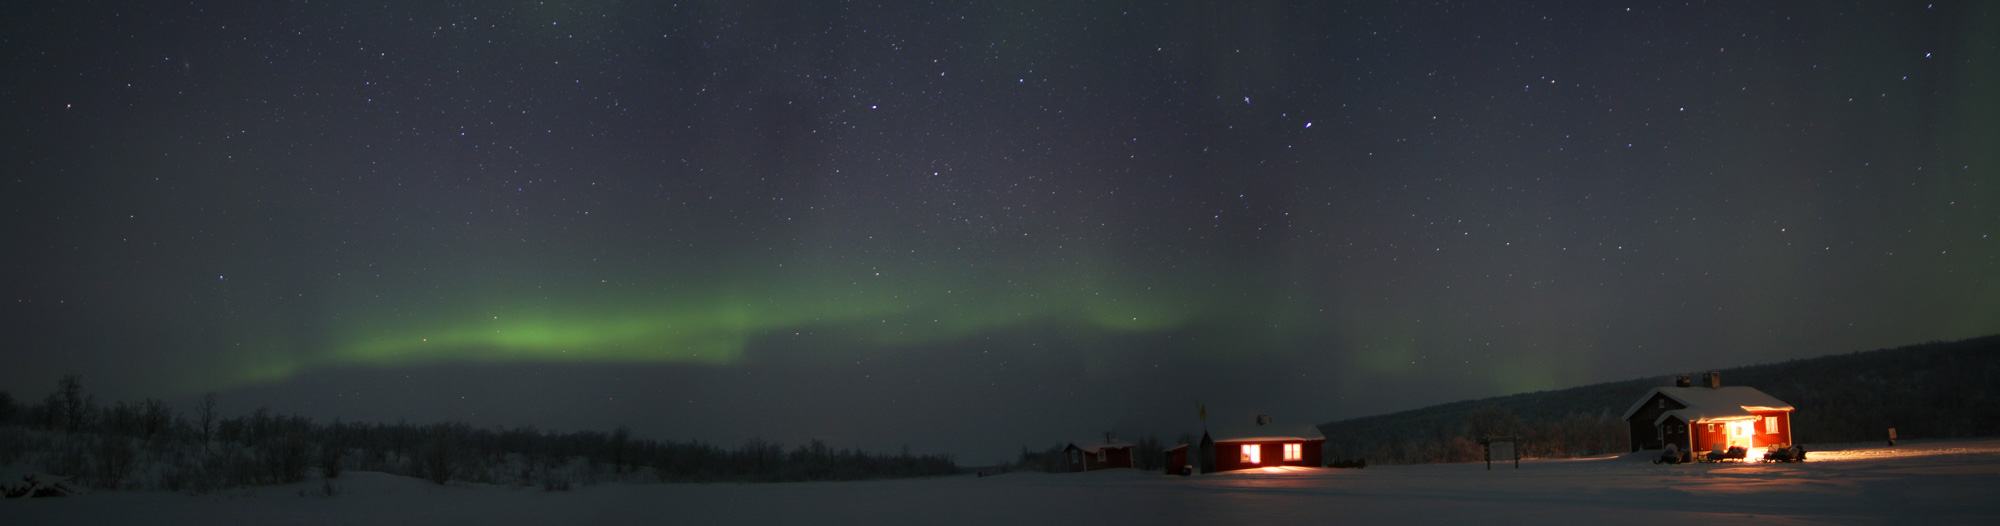 Panorama of the Aurora over the cabins early one evening.